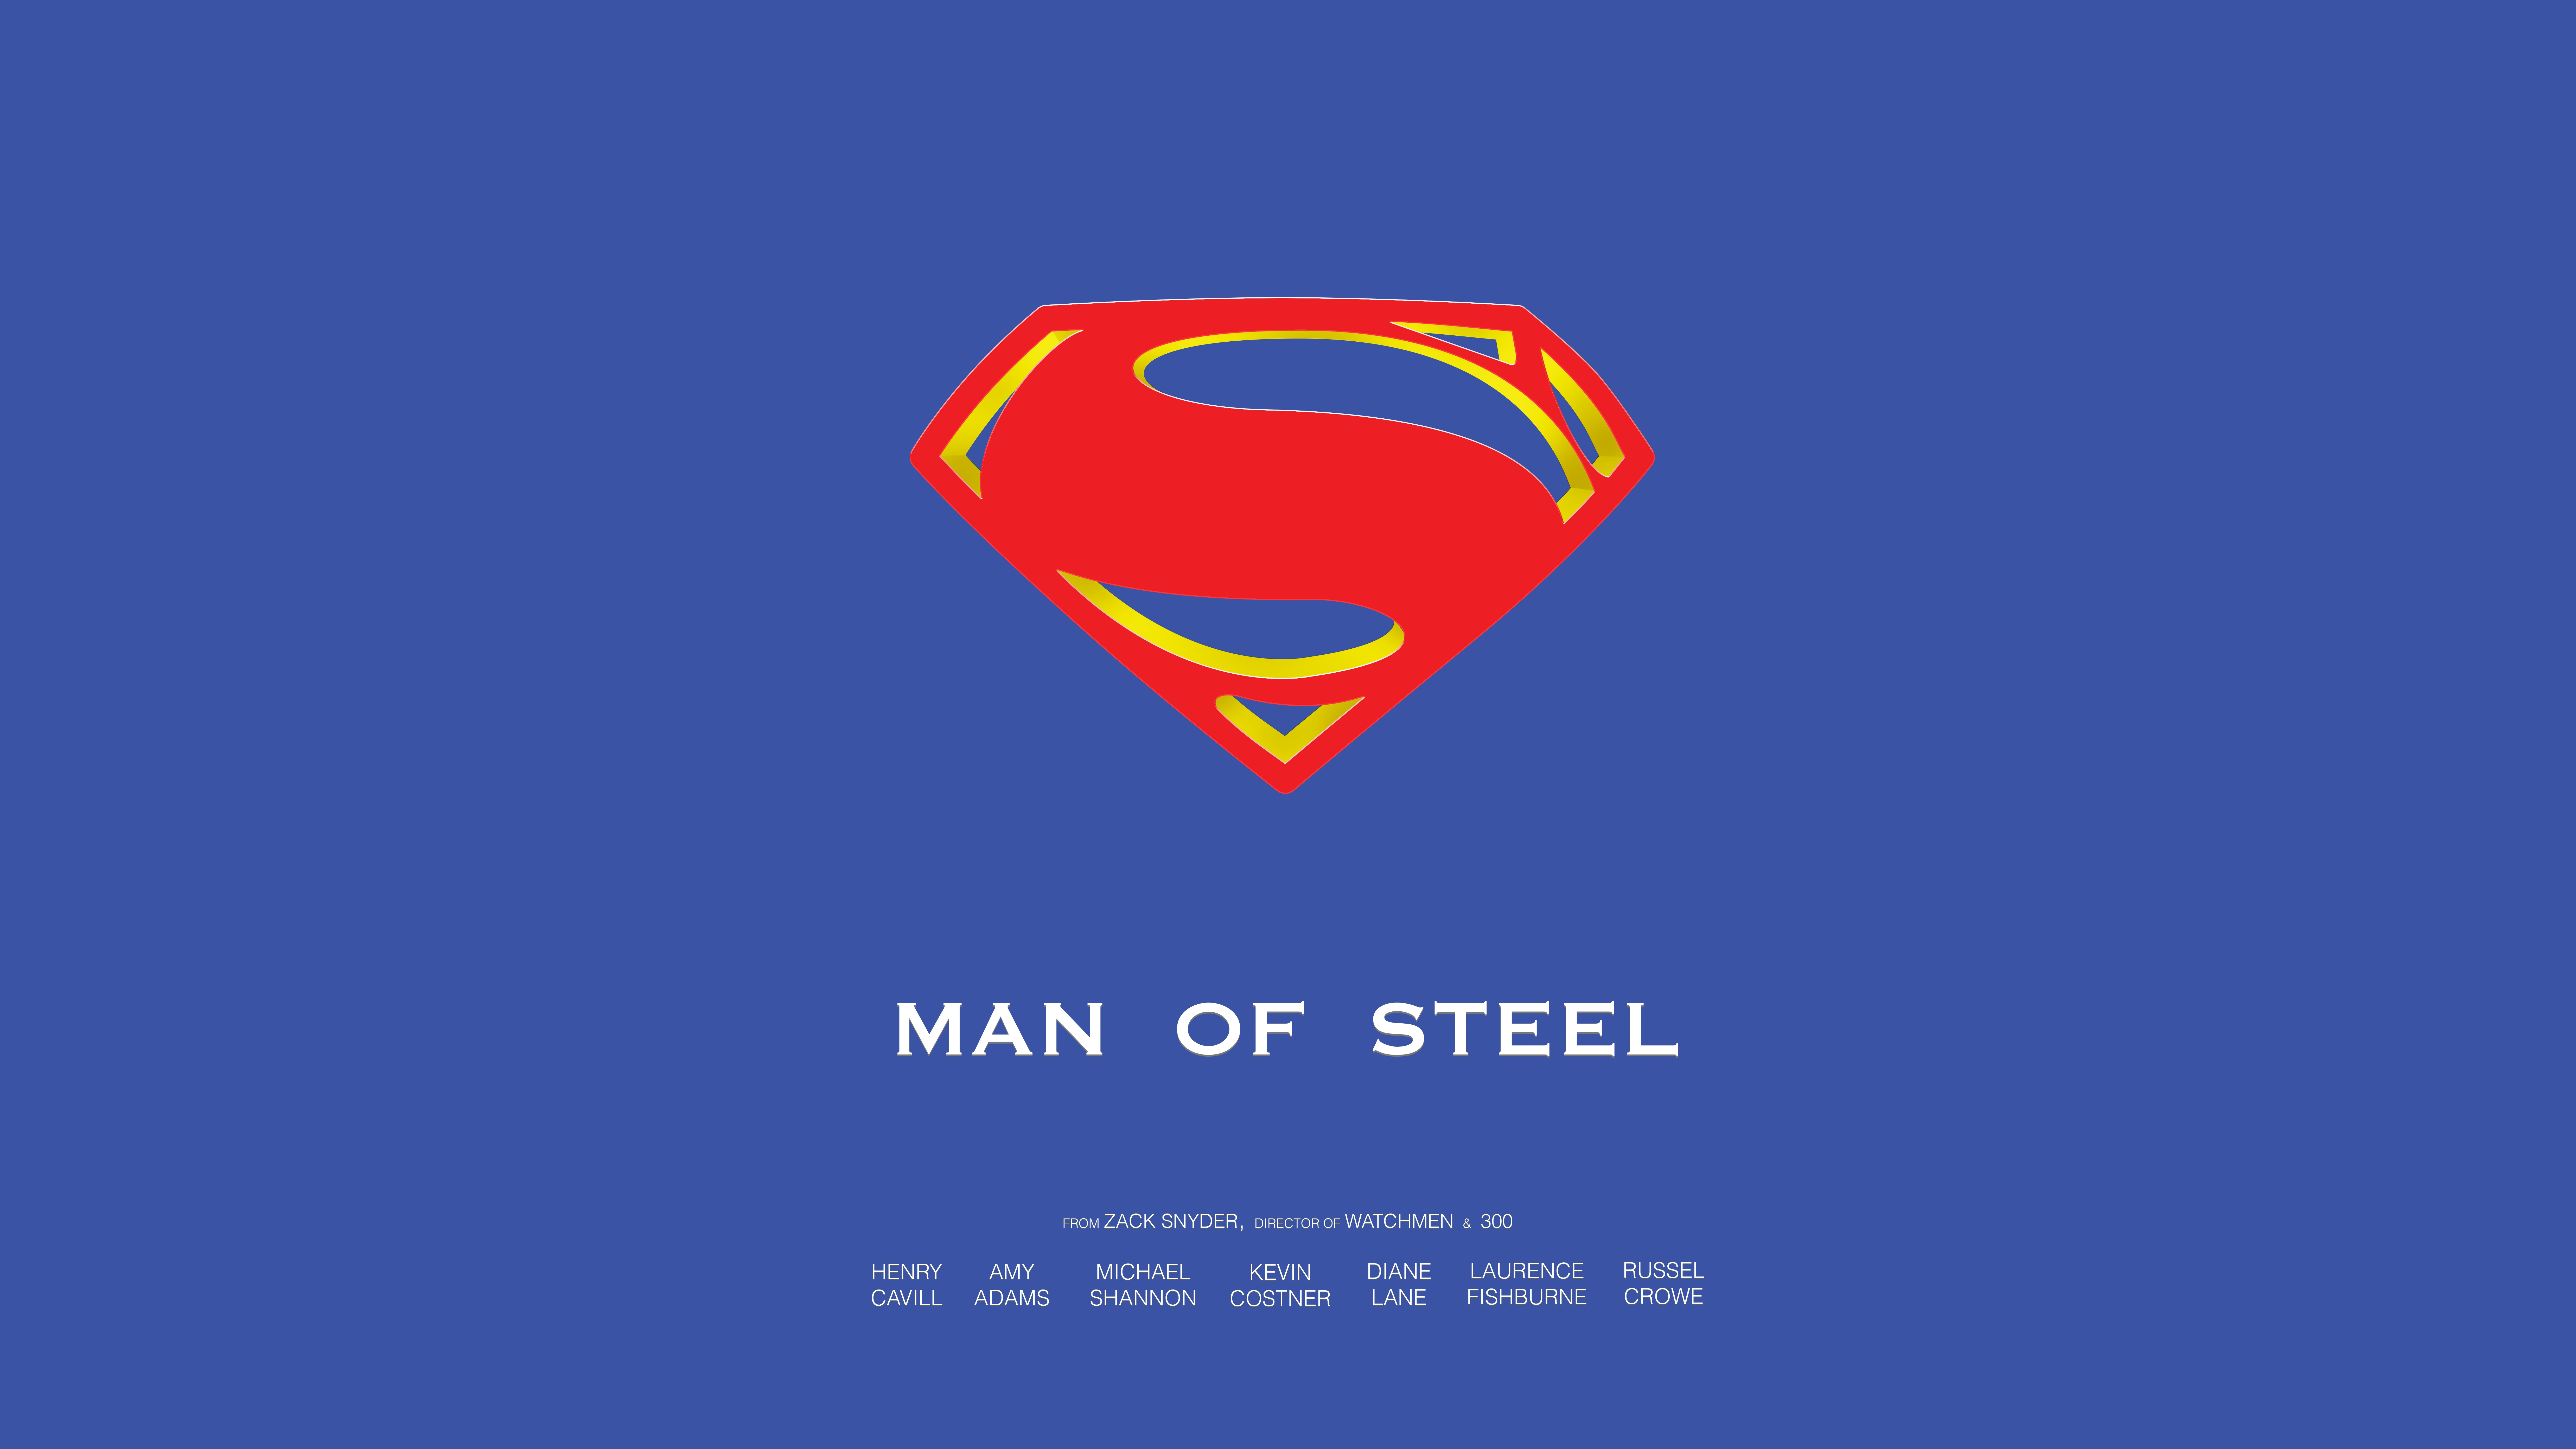 man of steel 8k ultra hd wallpaper and background image